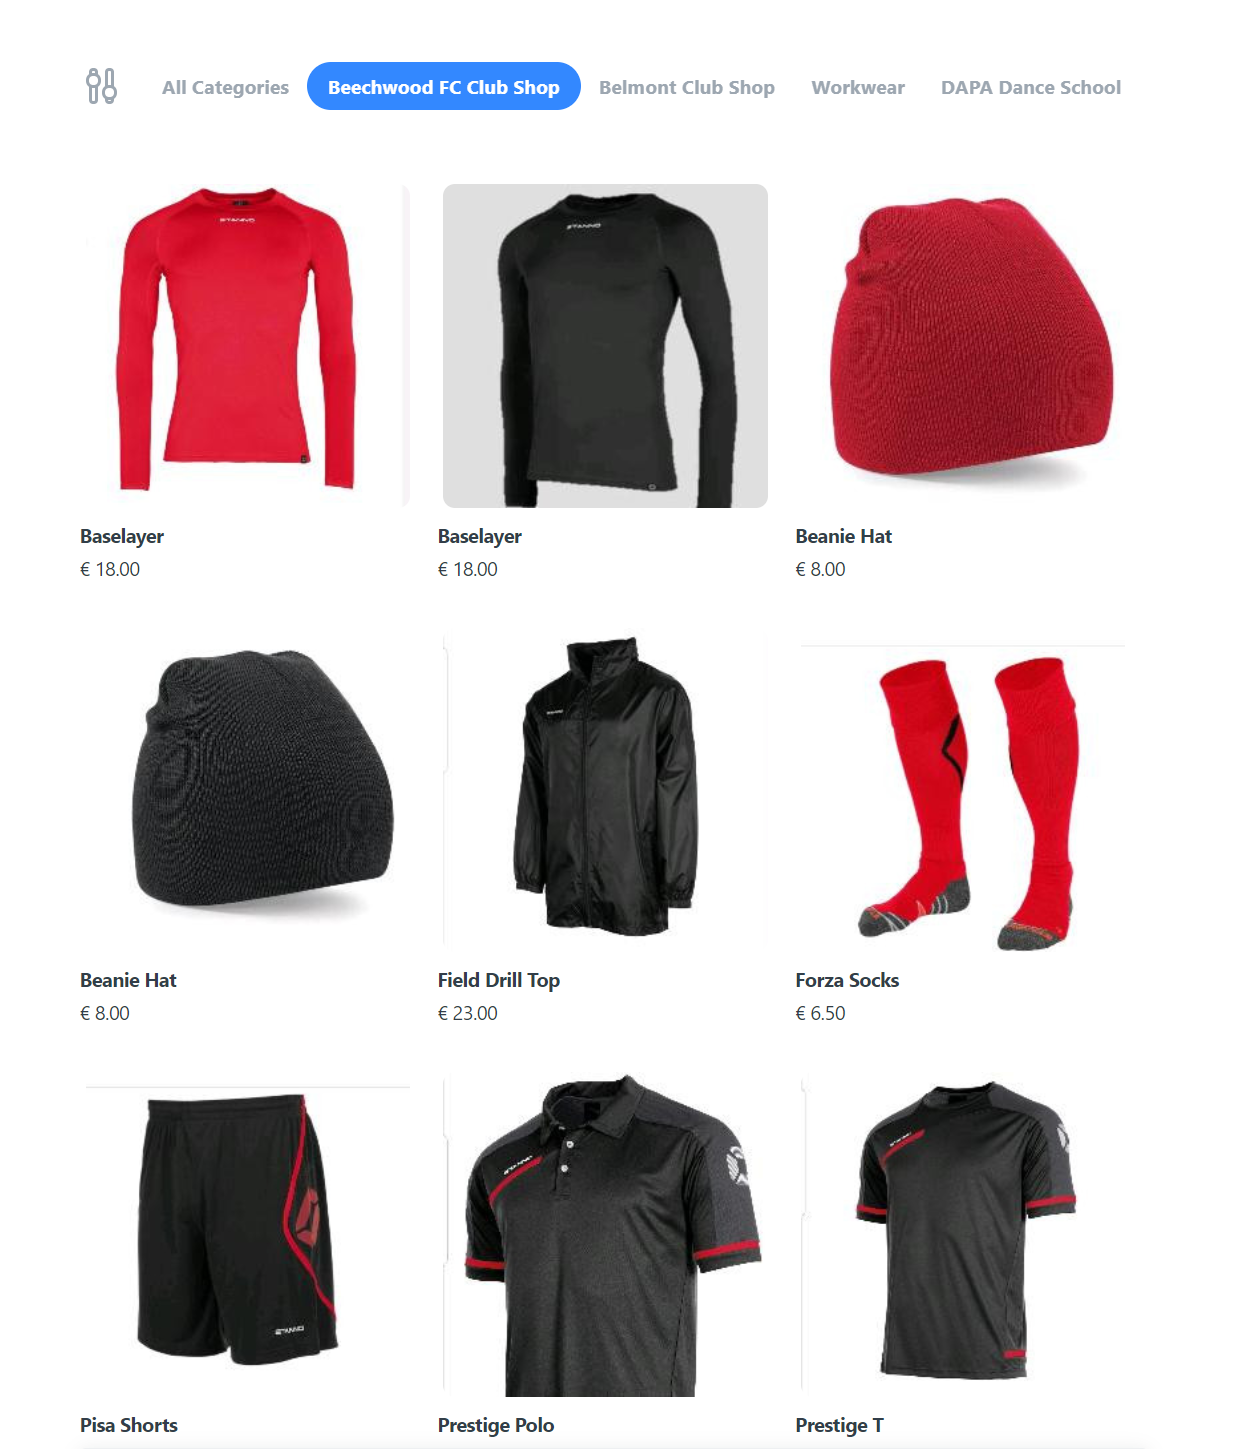 Barry Sports and 4 more pages - Personal - Microsoft Edge 07_11_2020 15_12_14 (2)